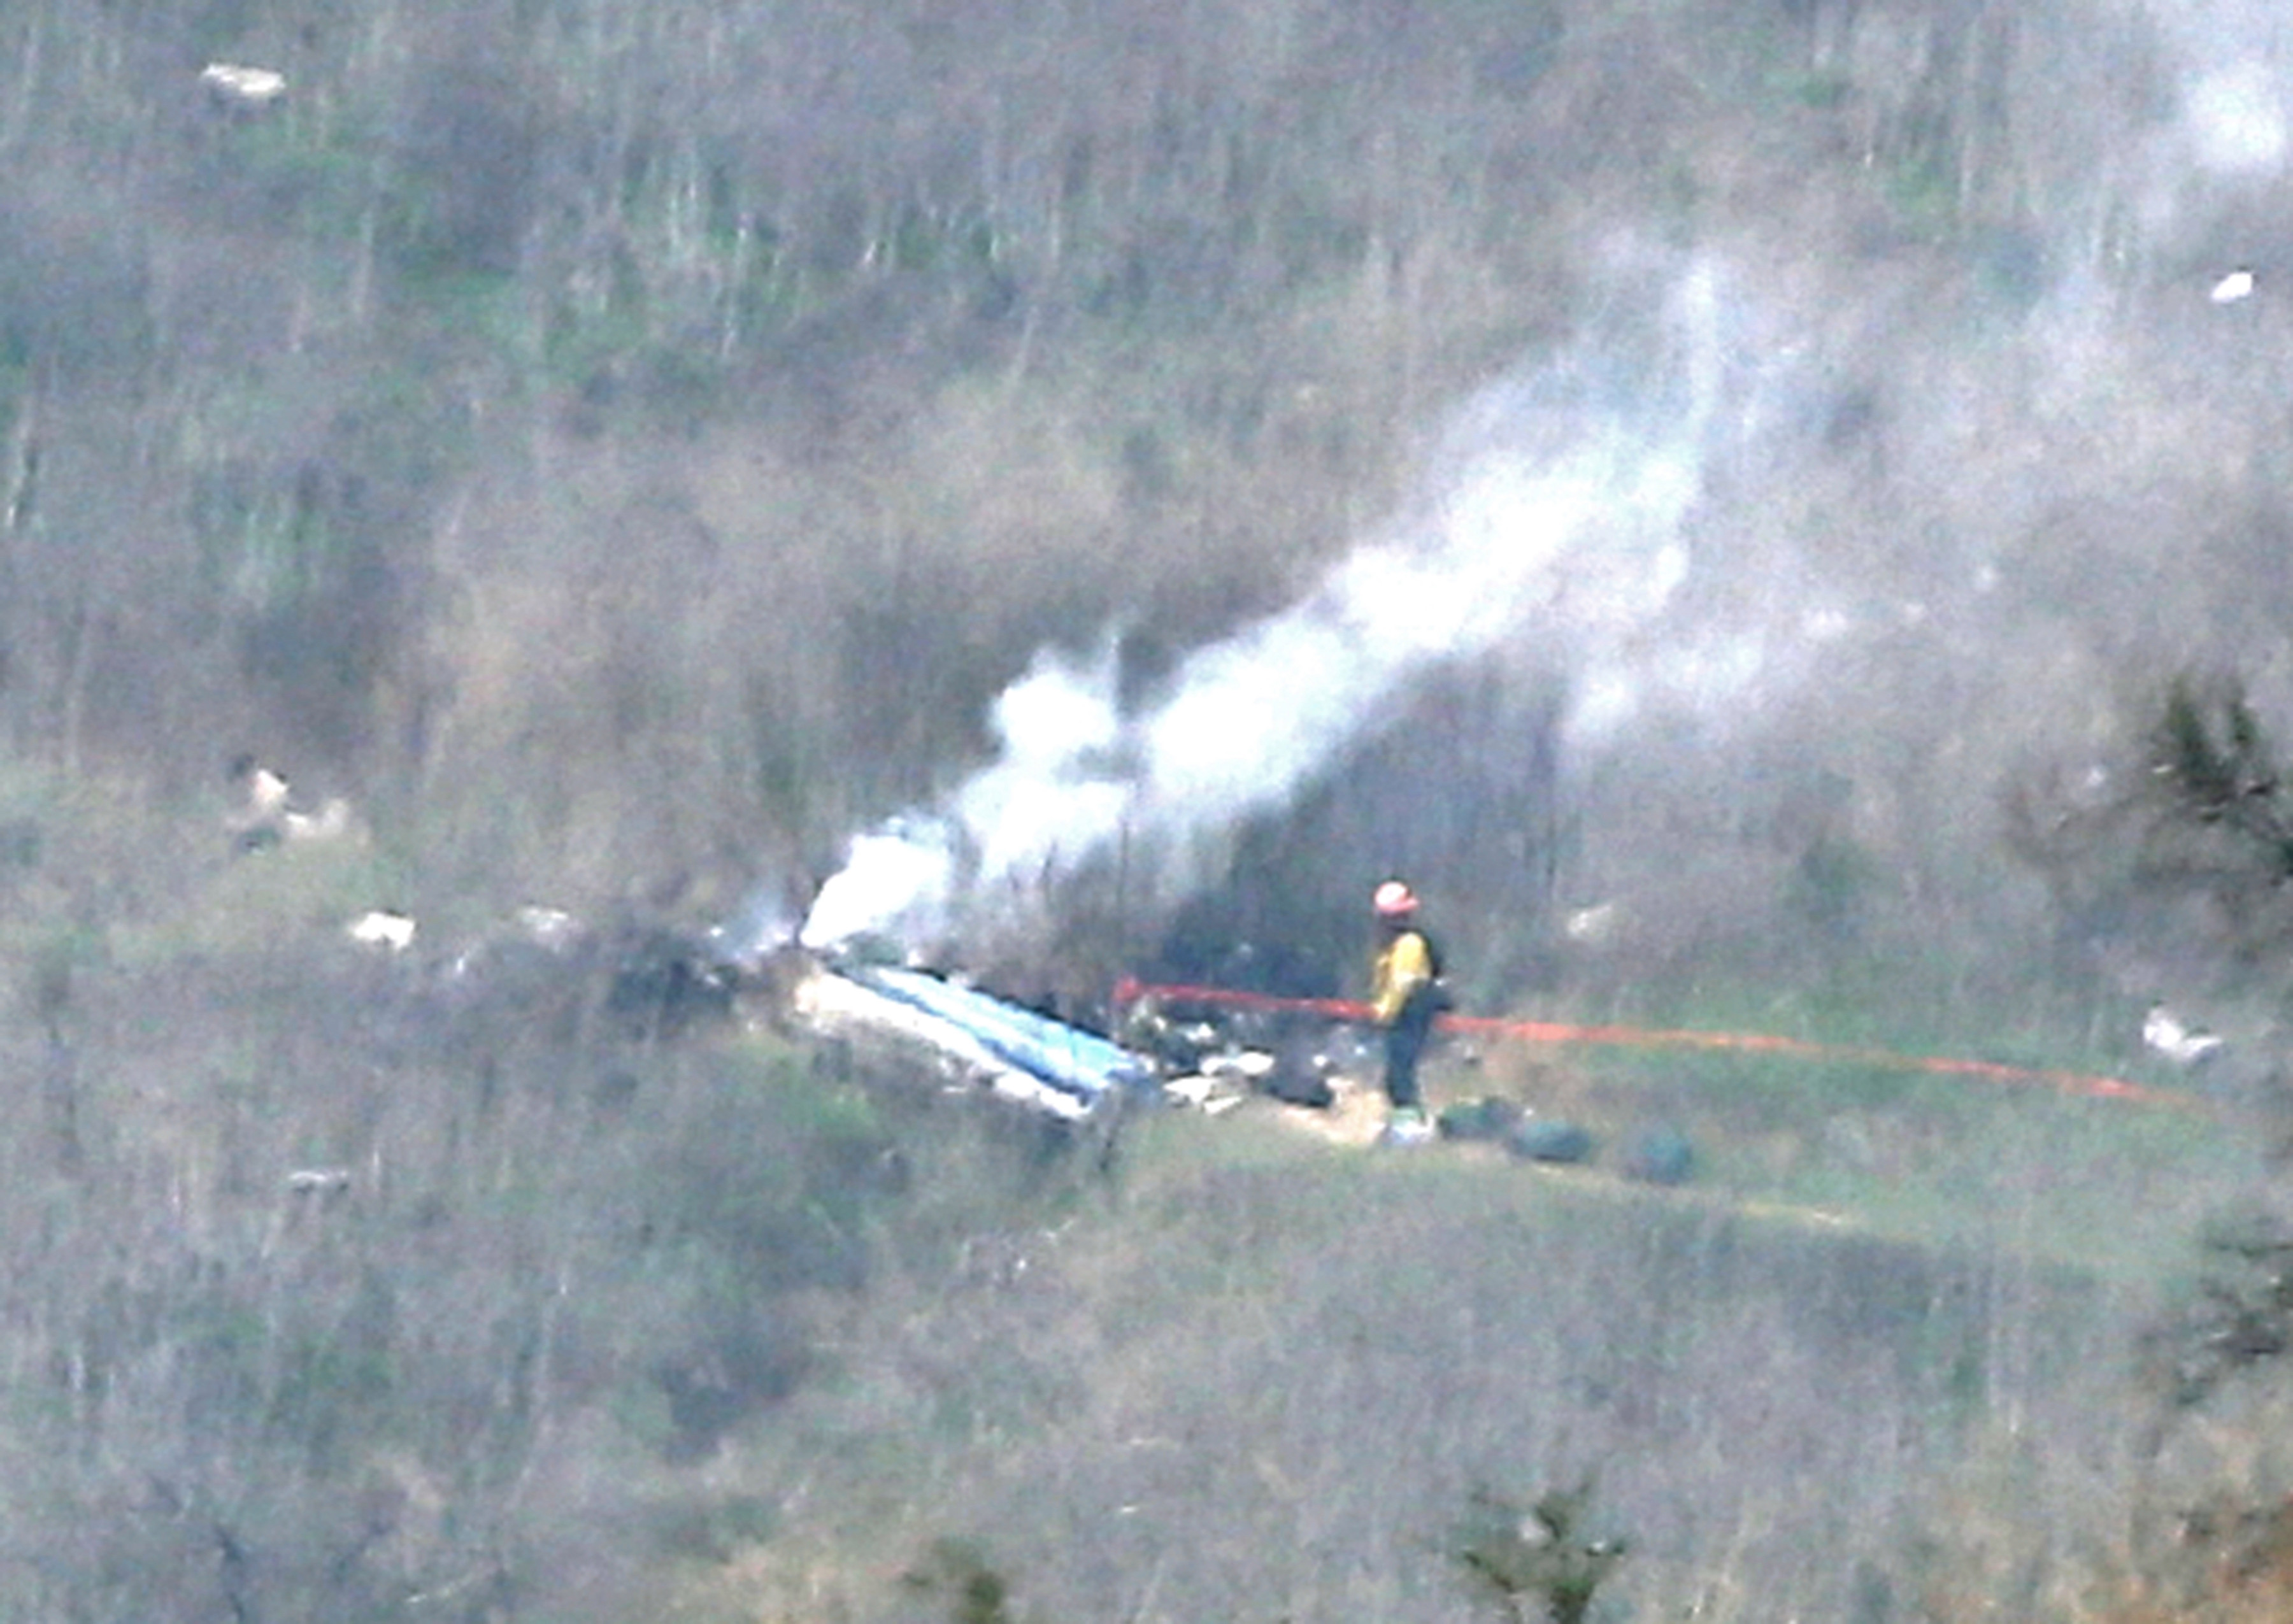 The helicopter had dropped nearly 500 feet in 15 seconds before it crashed